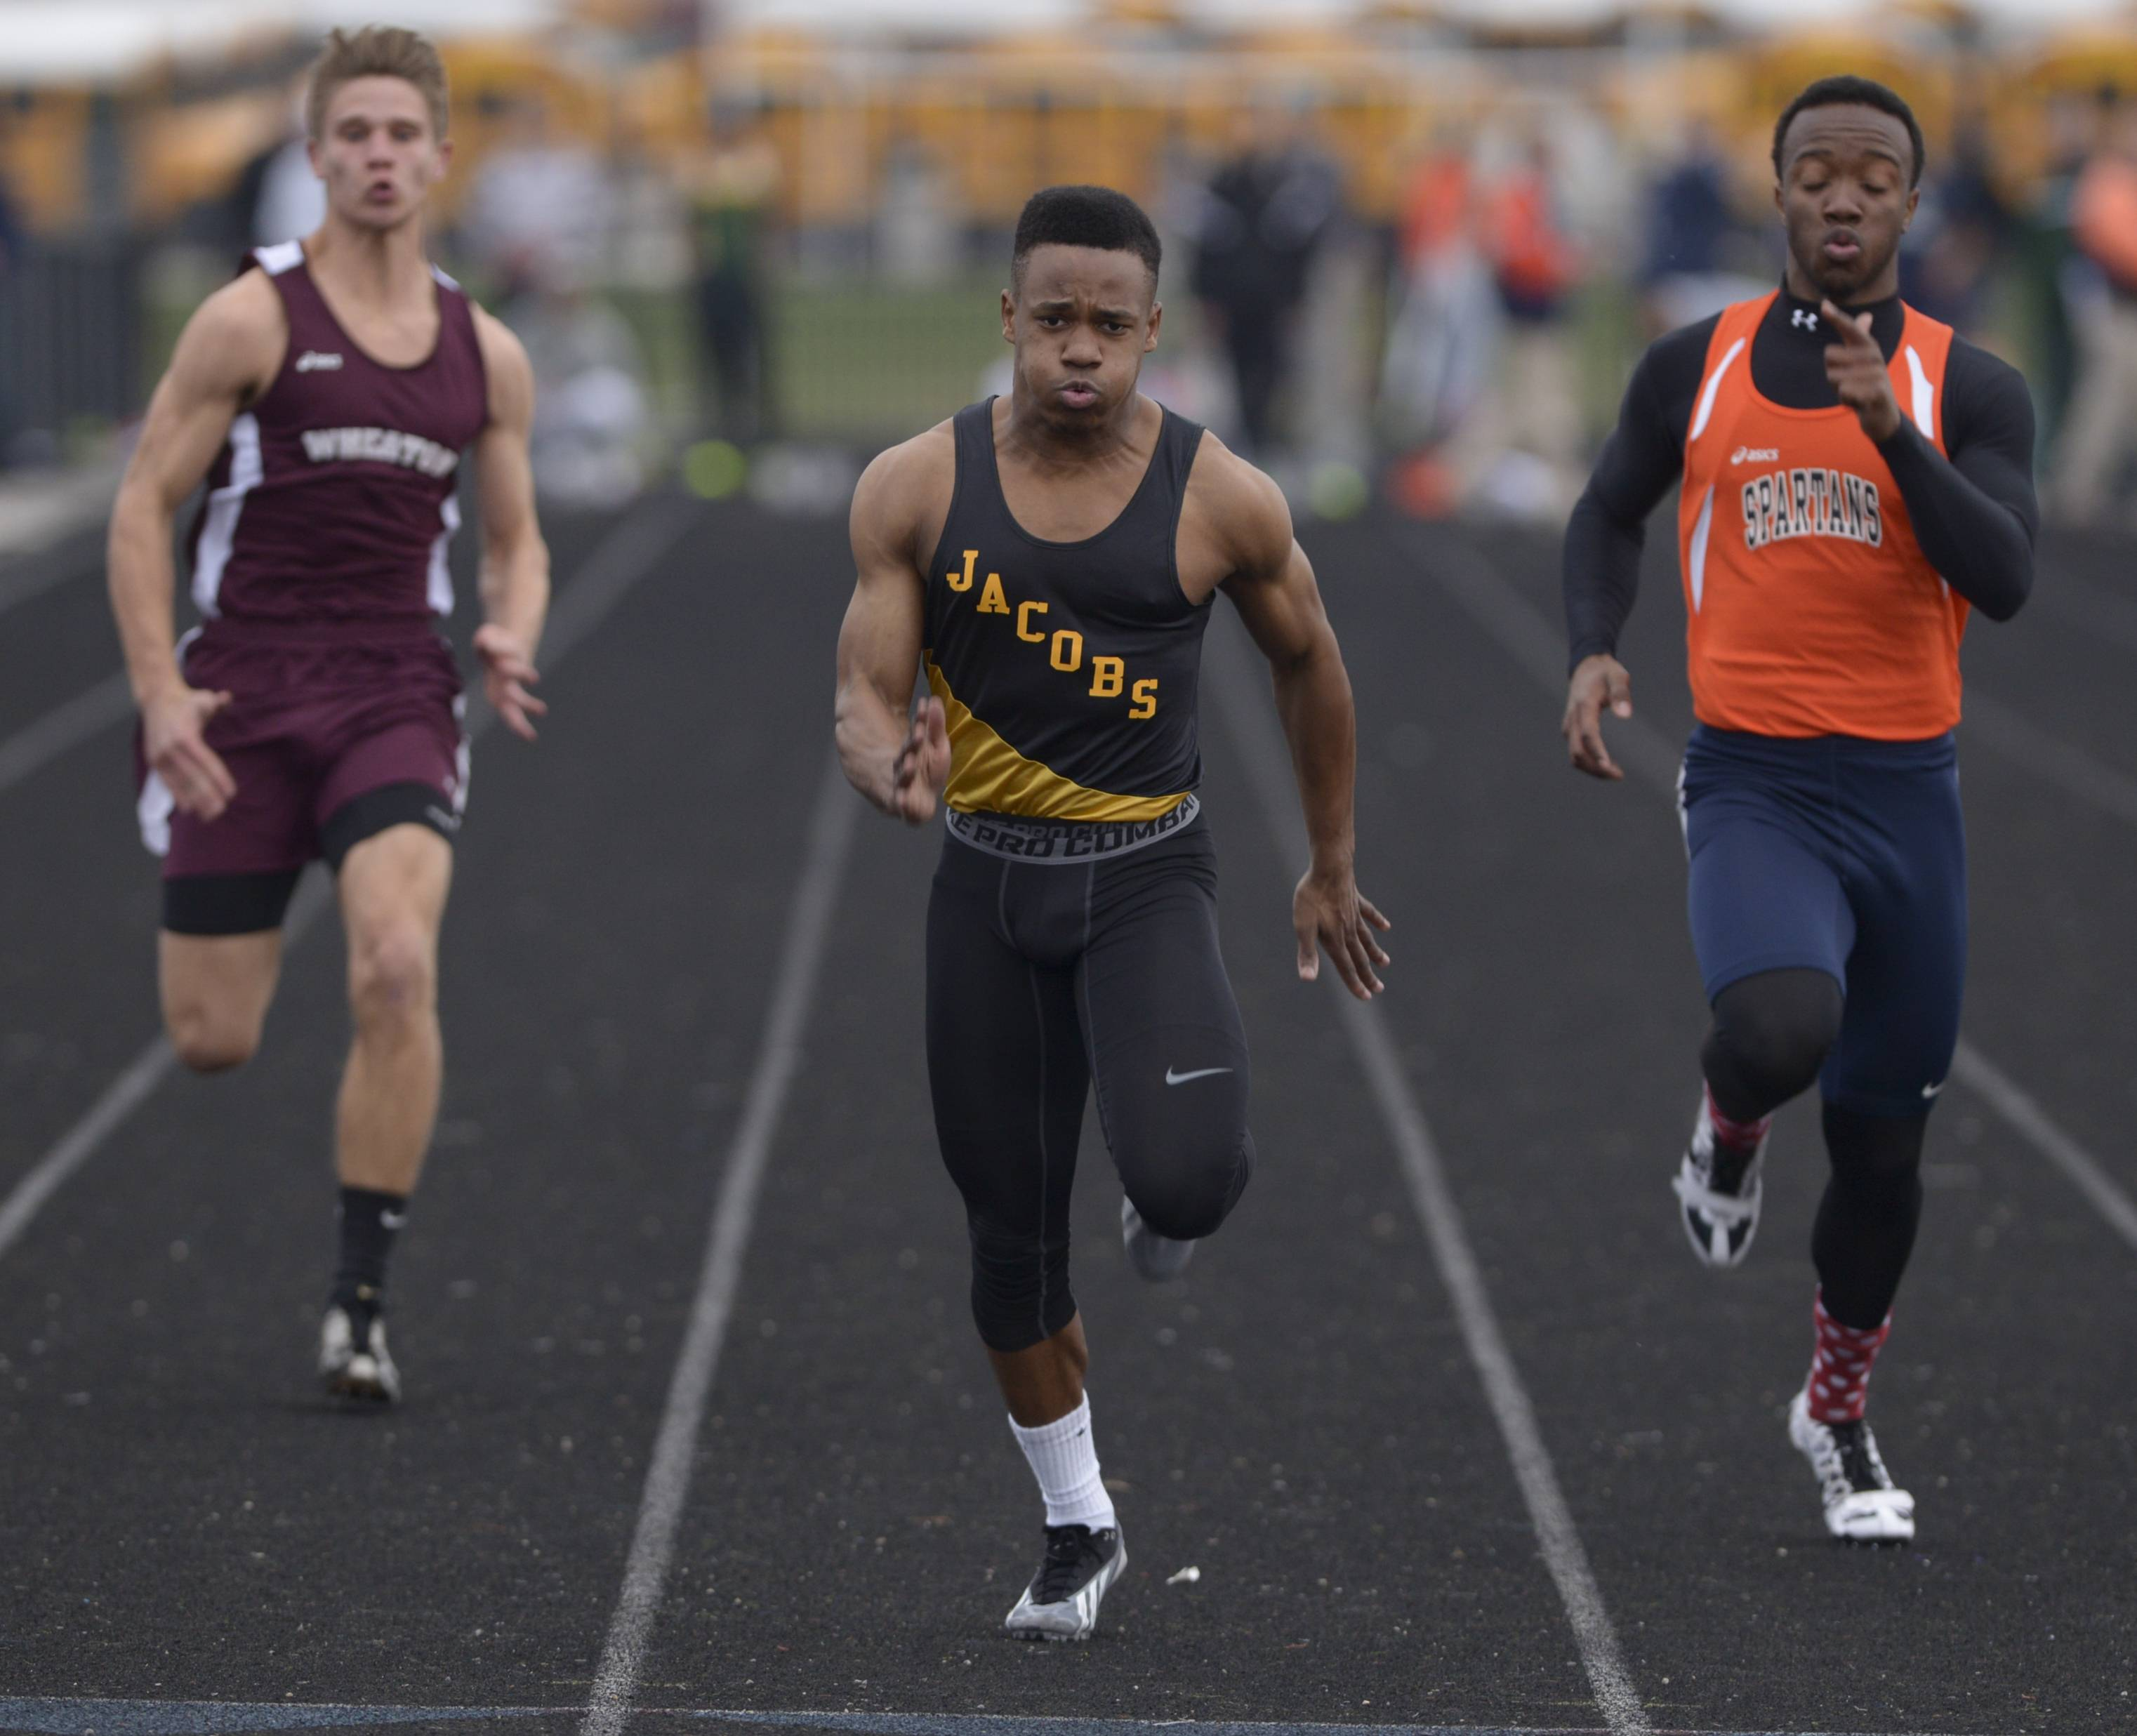 Jacobs' Josh Walker, center, competes in the 100-meter dash during the Gus Scott Track and Field Invitational at Naperville North earlier this season. Walker will compete in the event at the Class 3A state meet in Charleston this weekend.